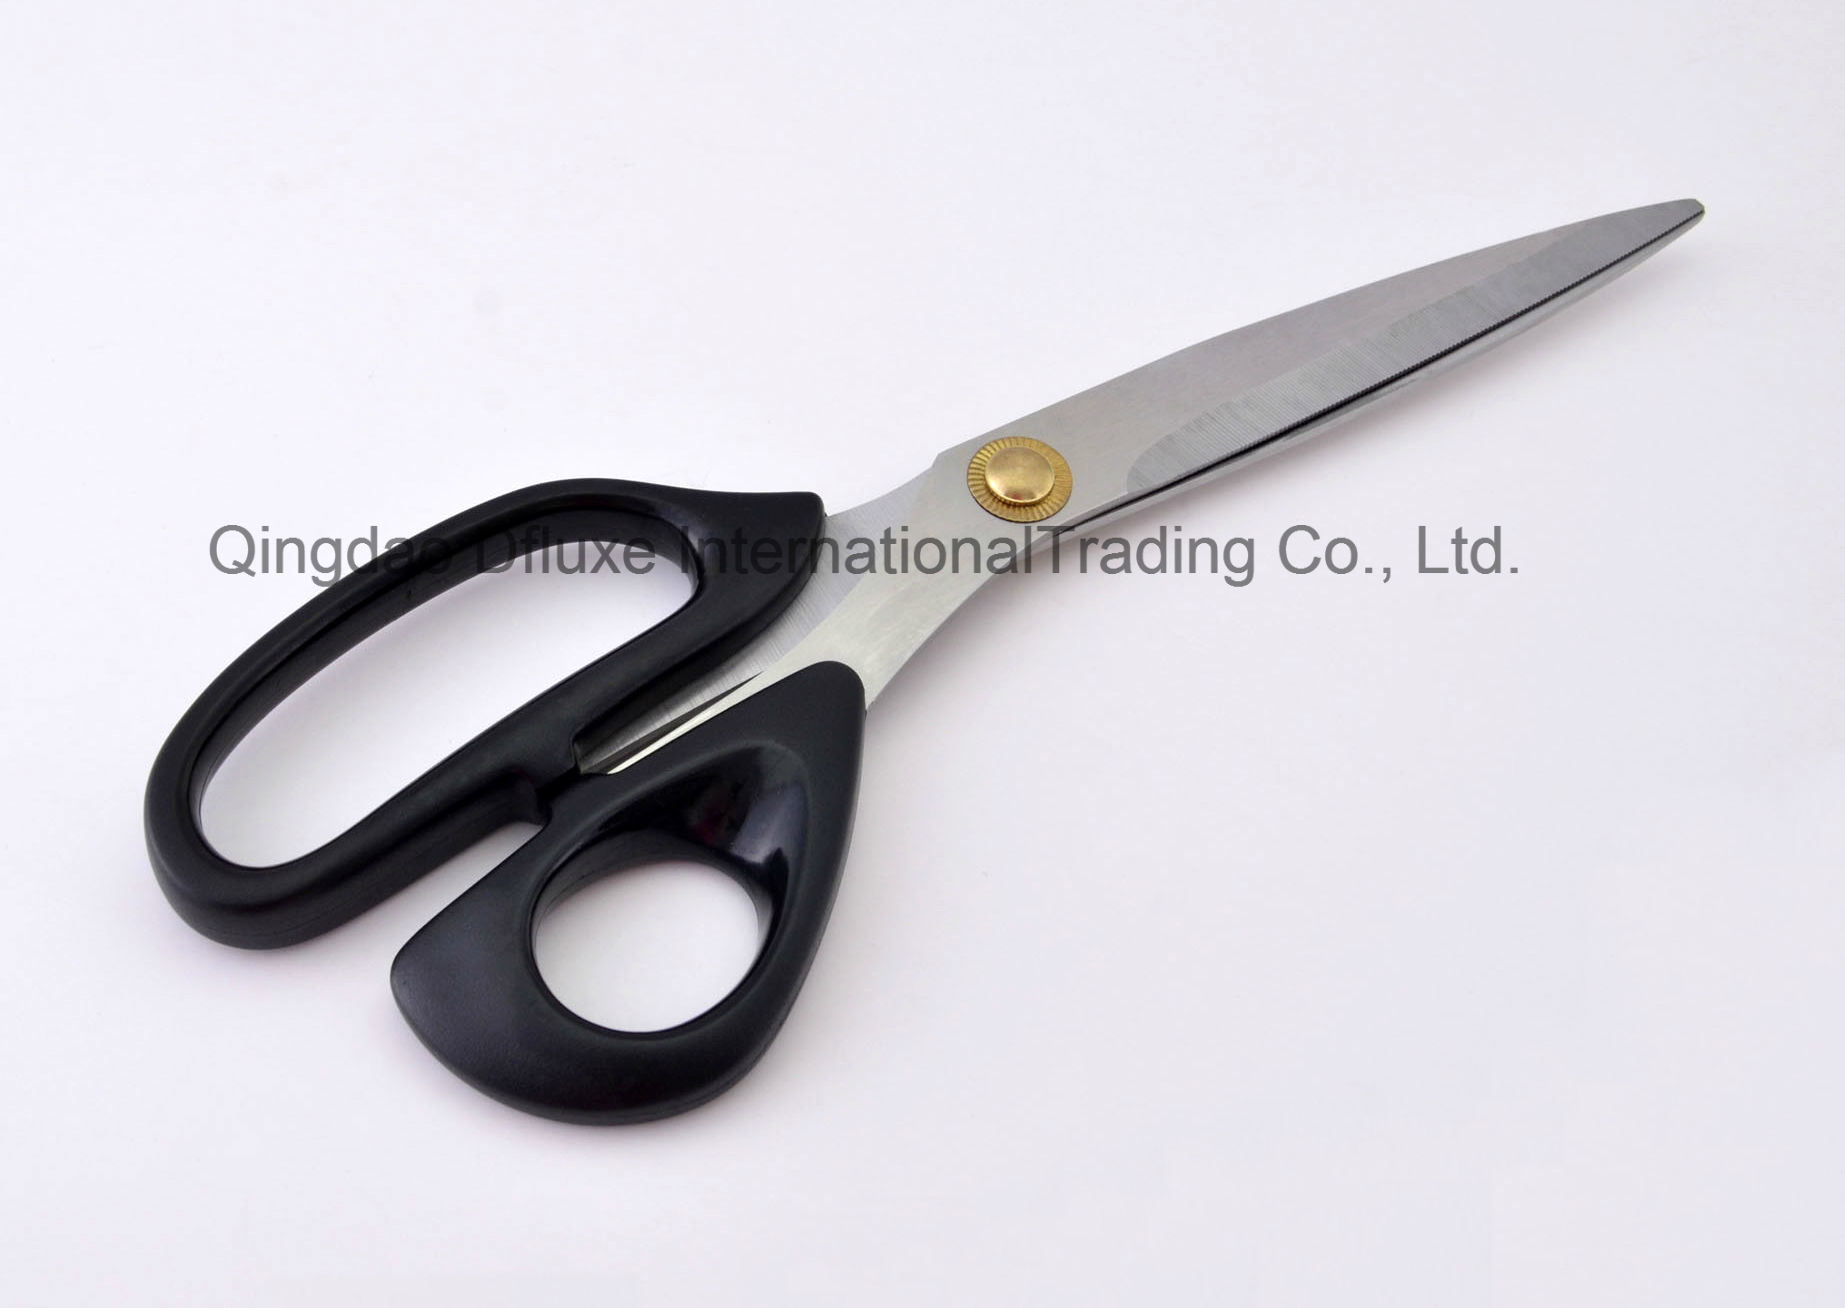 "10-1/4"" High Quality and Hot-Selling Sharp Kitchen Scissors"